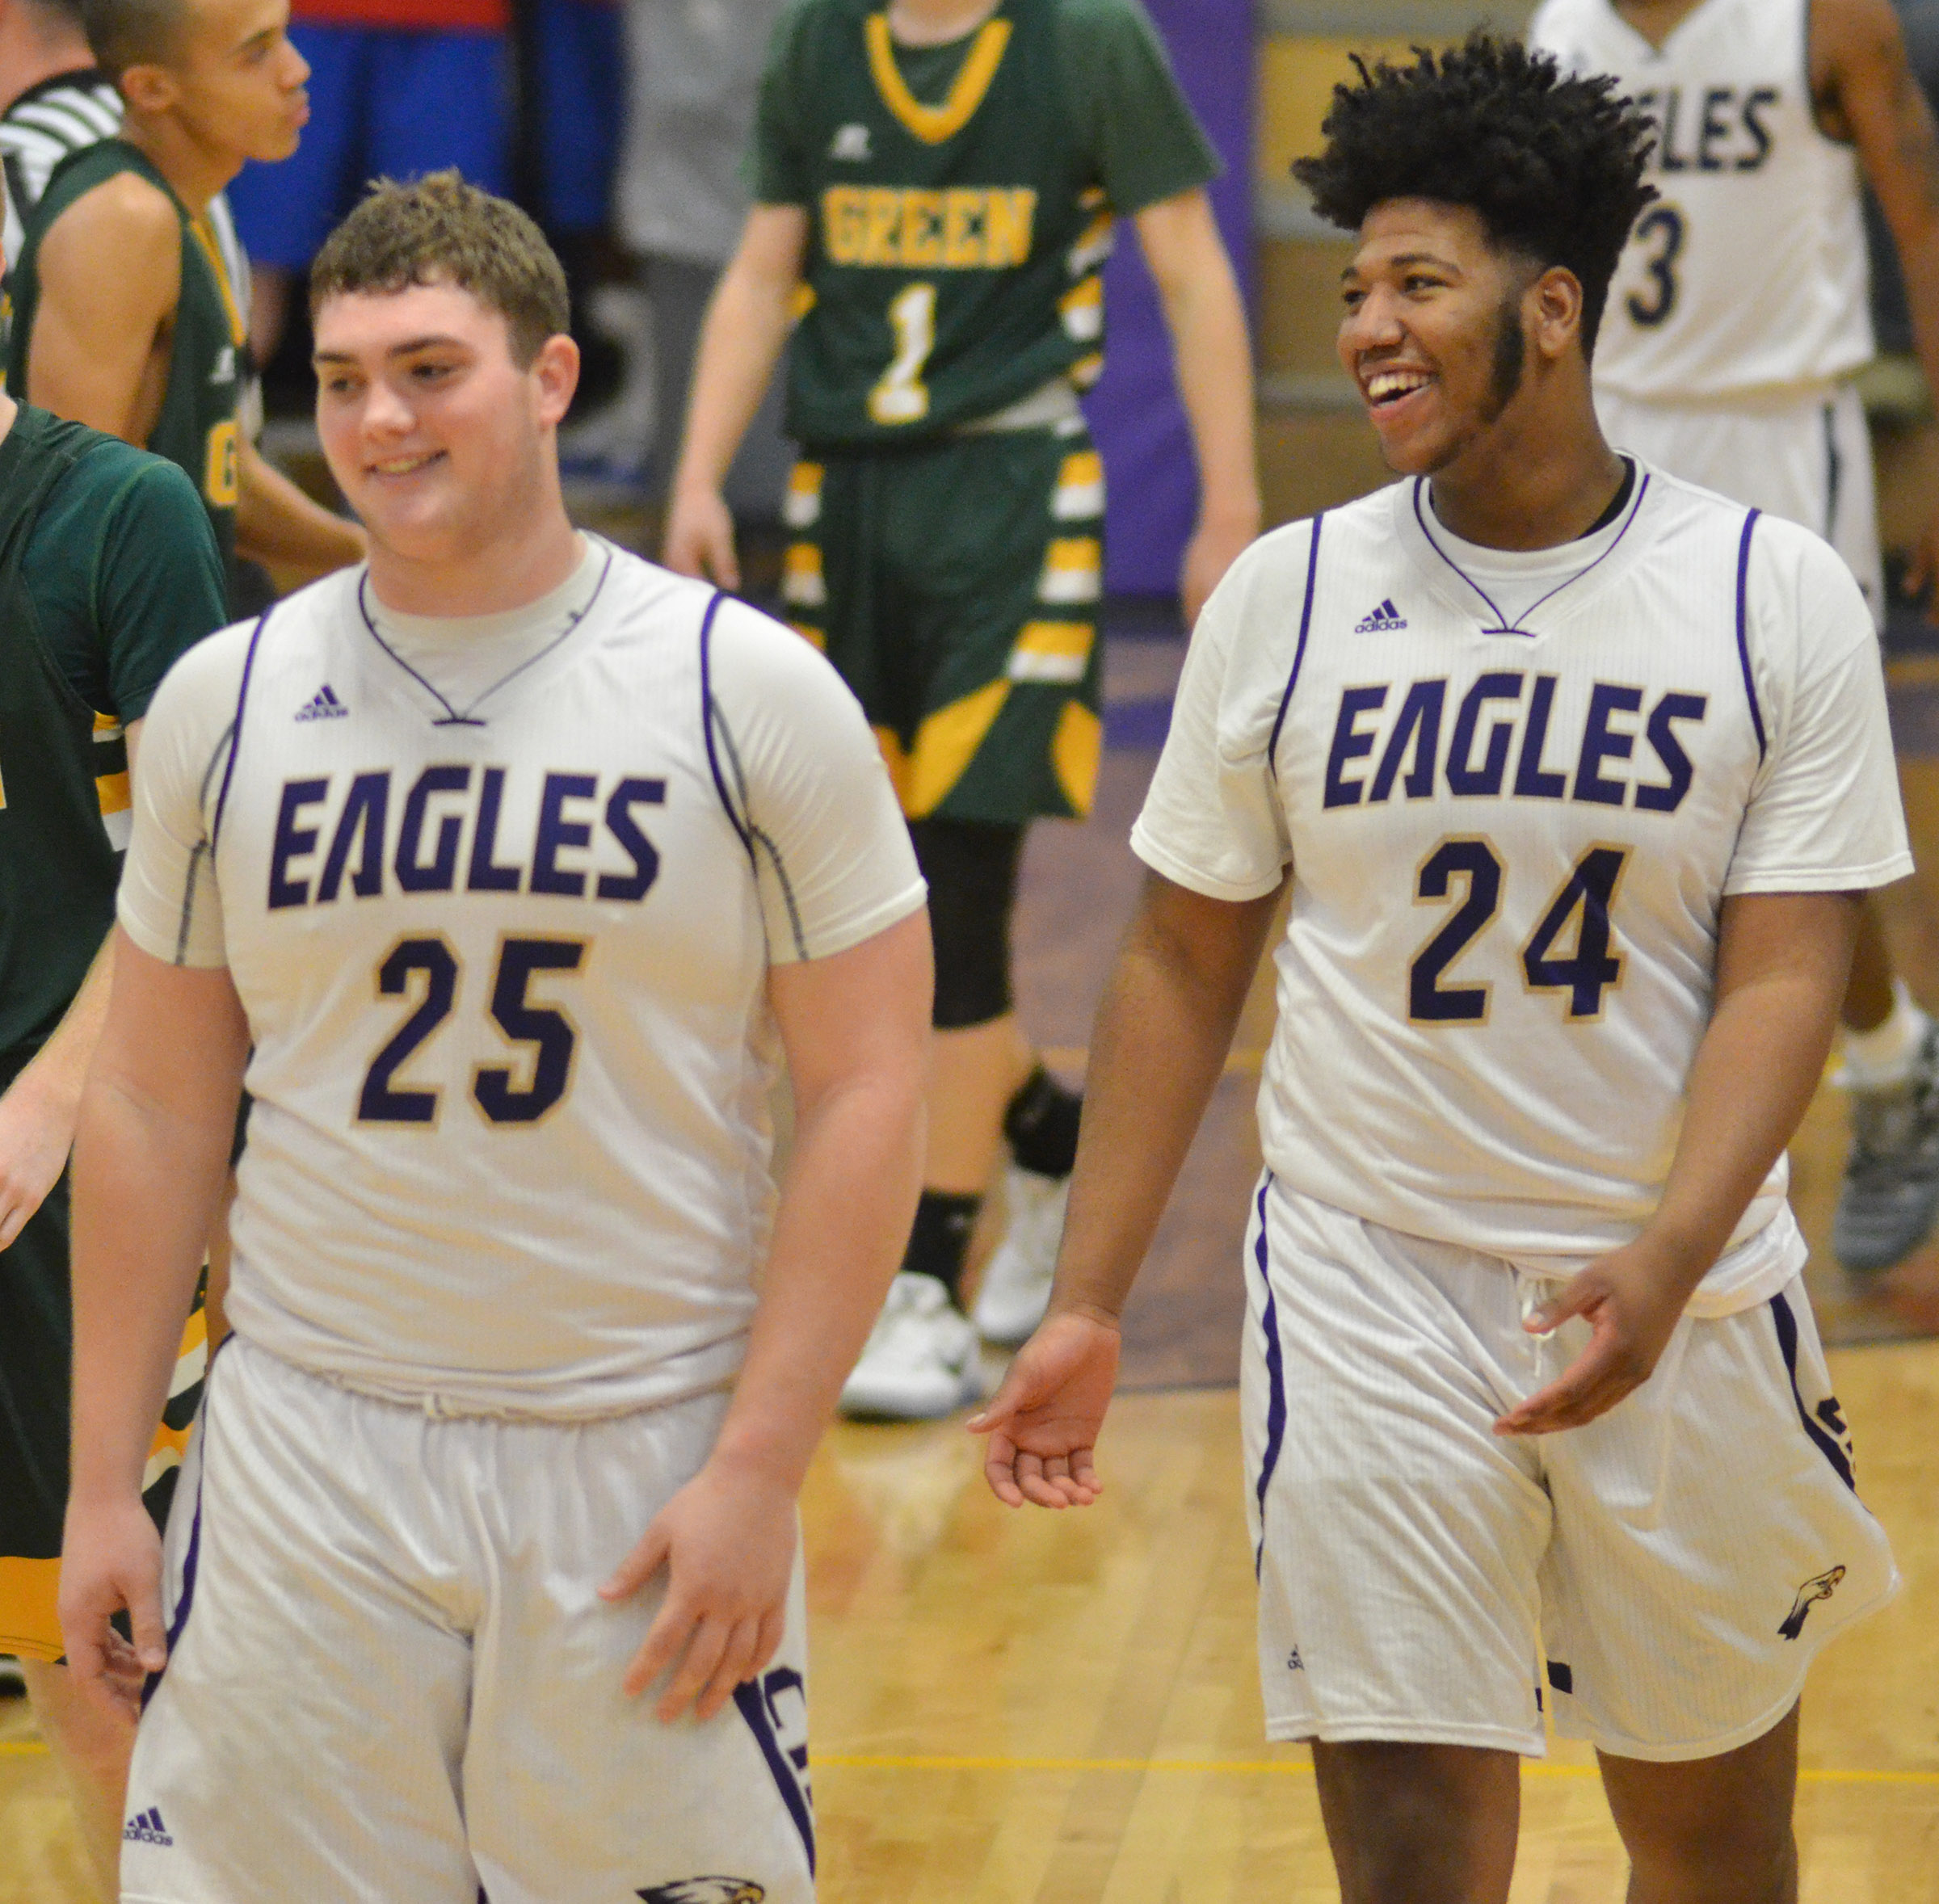 CHS sophomore Lane Bottoms, at left, and senior Micah Corley share a laugh during the game.